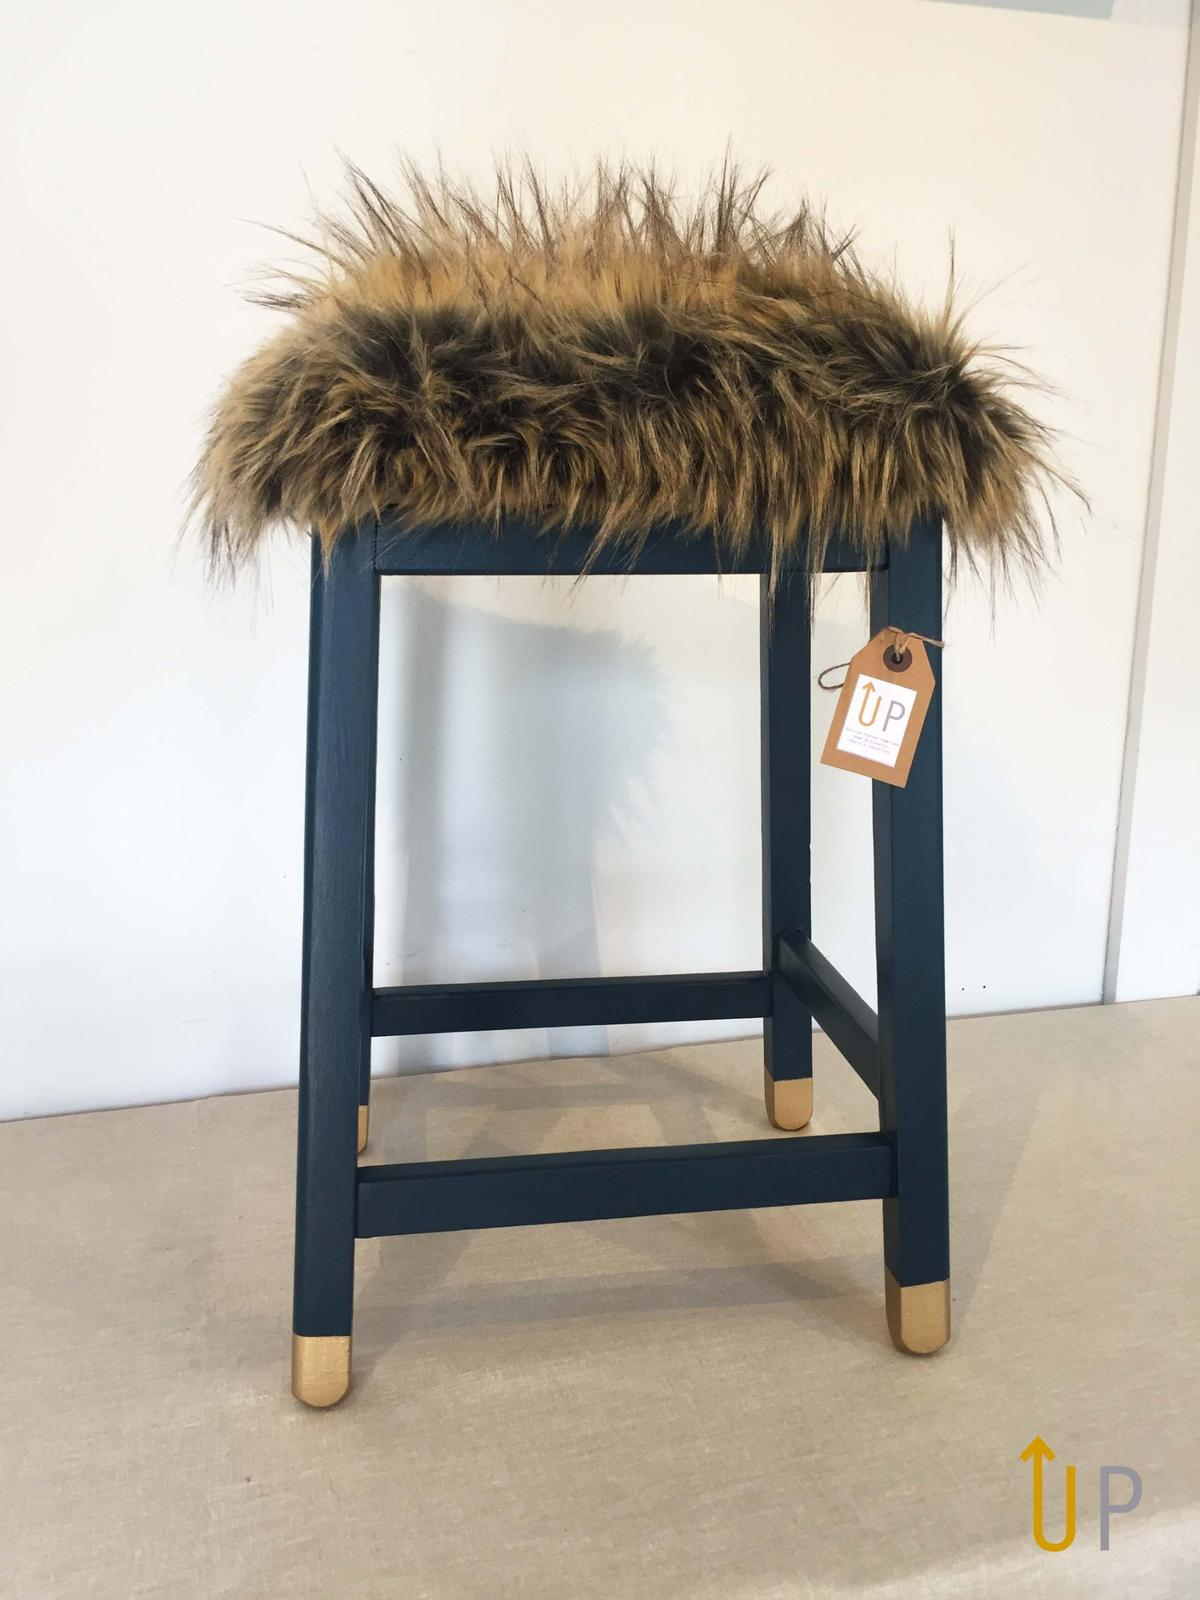 Enjoyable Blue And Gold Upcycled Fur Stool In Le12 Charnwood For Beatyapartments Chair Design Images Beatyapartmentscom